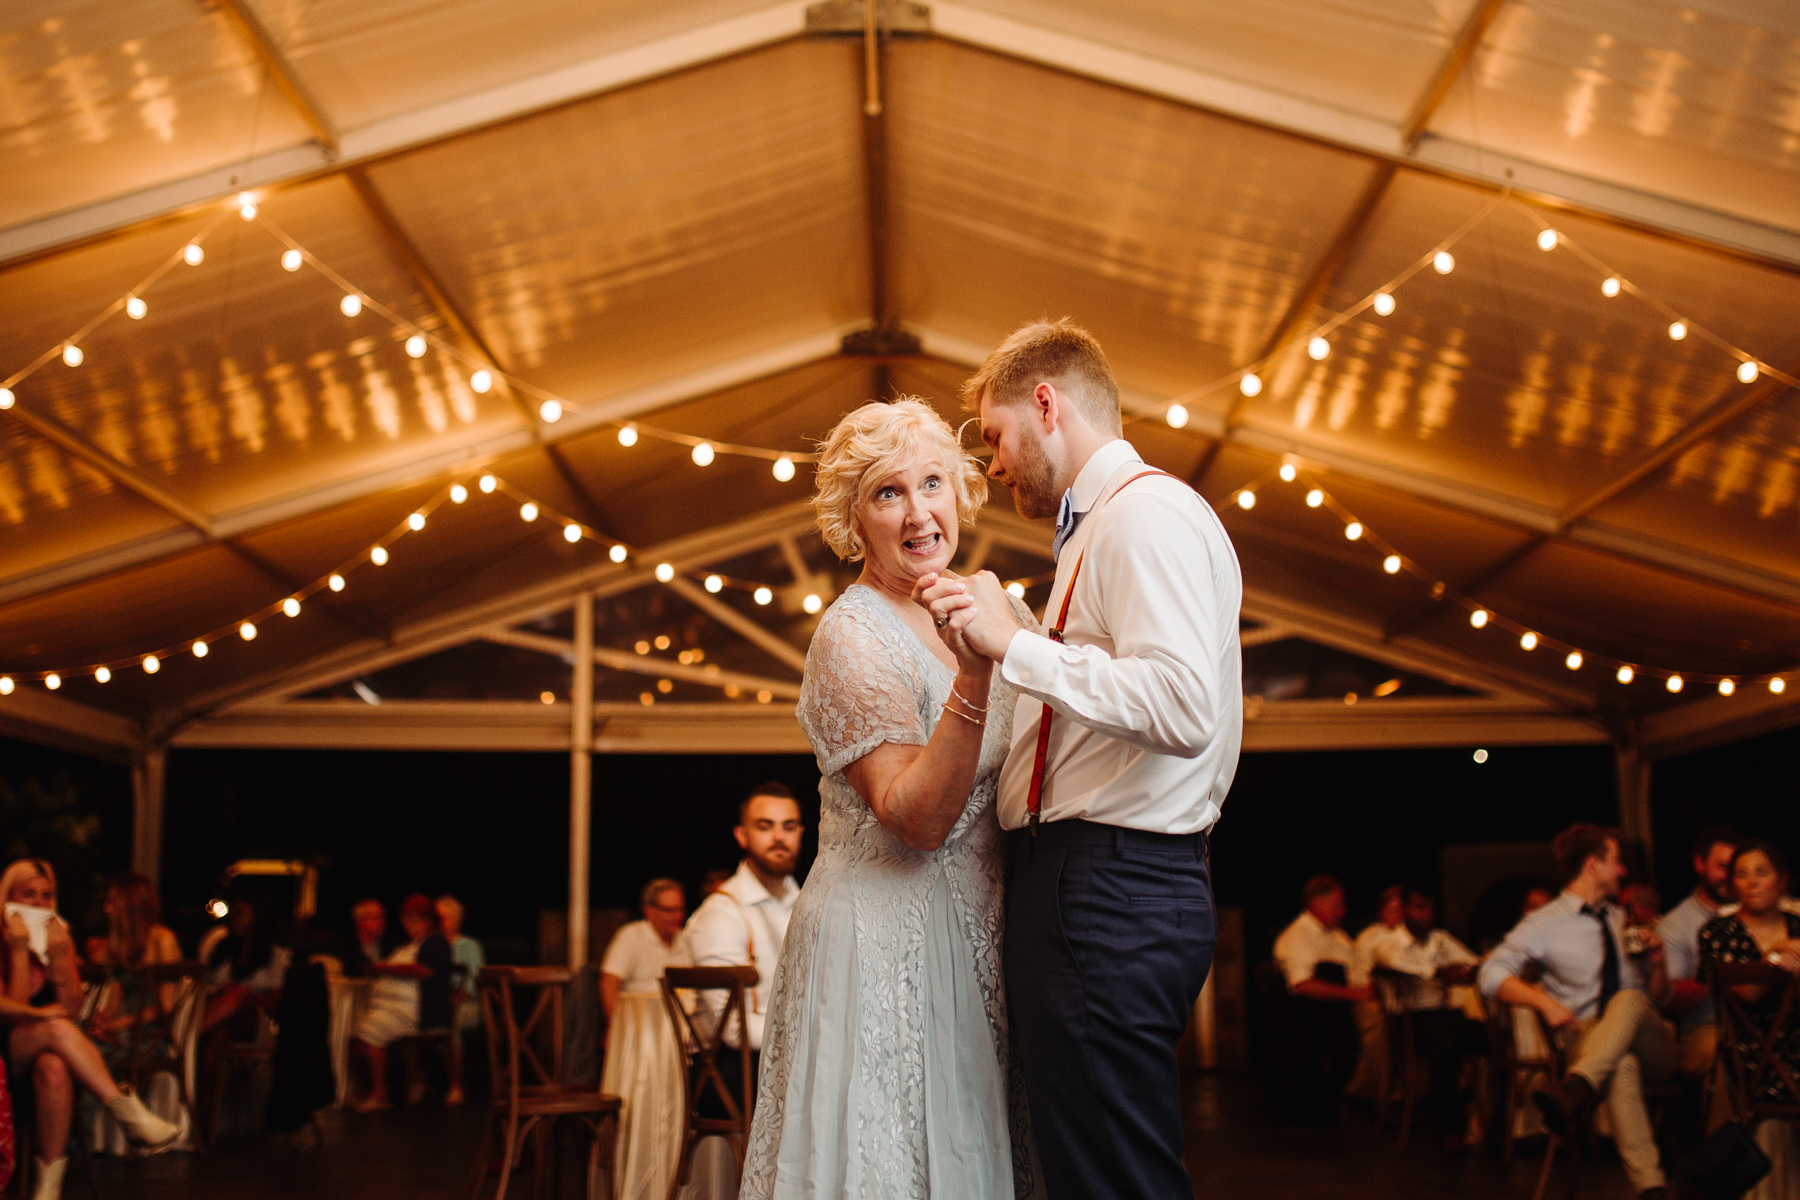 mother son dance during the reception of a Sunny summer wedding at Dara's Garden in Knoxville, Tennessee